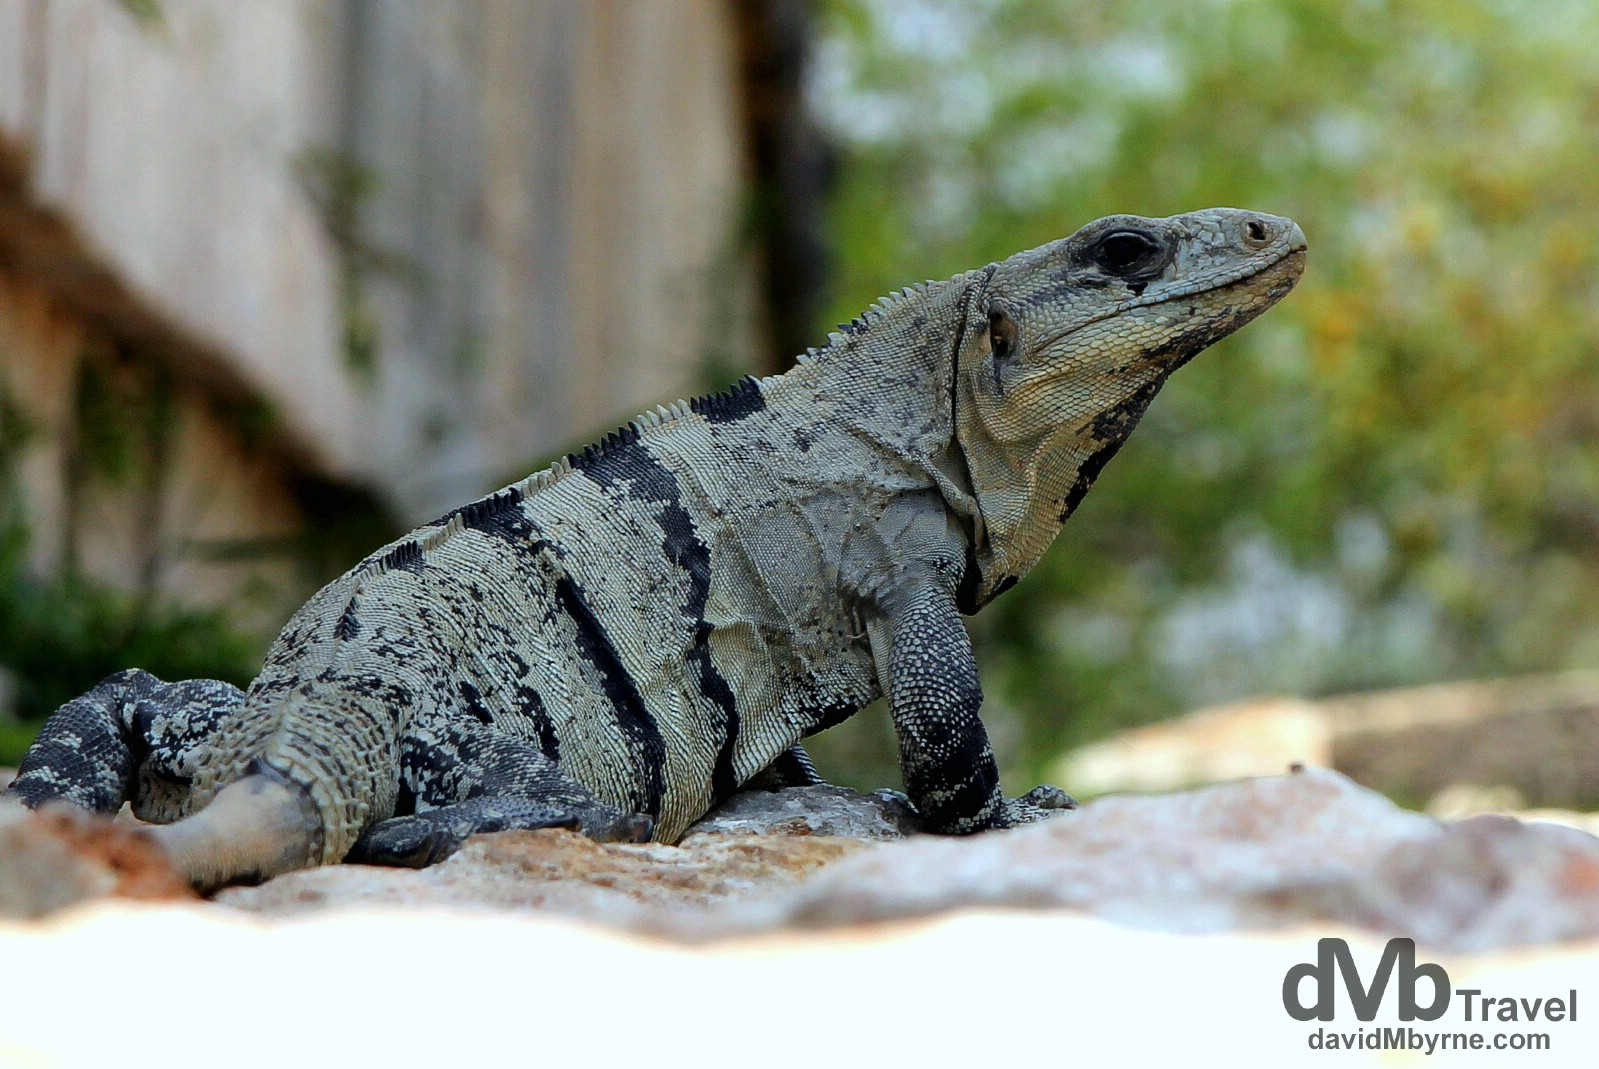 A lizard resting in the shade at the Uxmal Mayan ruins, Yucatan Peninsula, Mexico. May 2nd 2013.